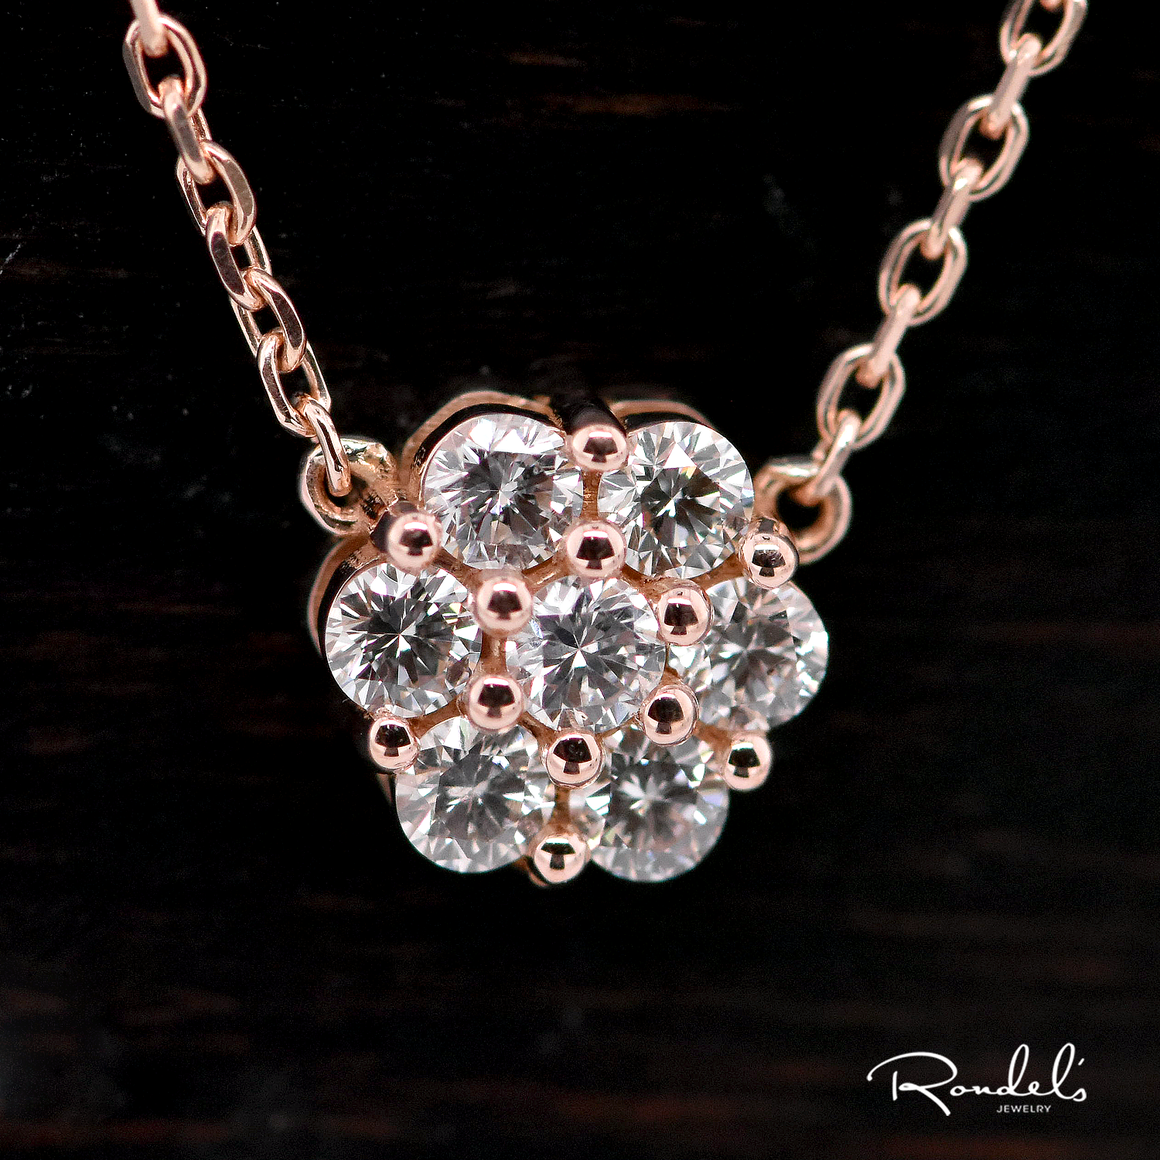 14K Rose Gold Diamond Flower Pendant Necklace